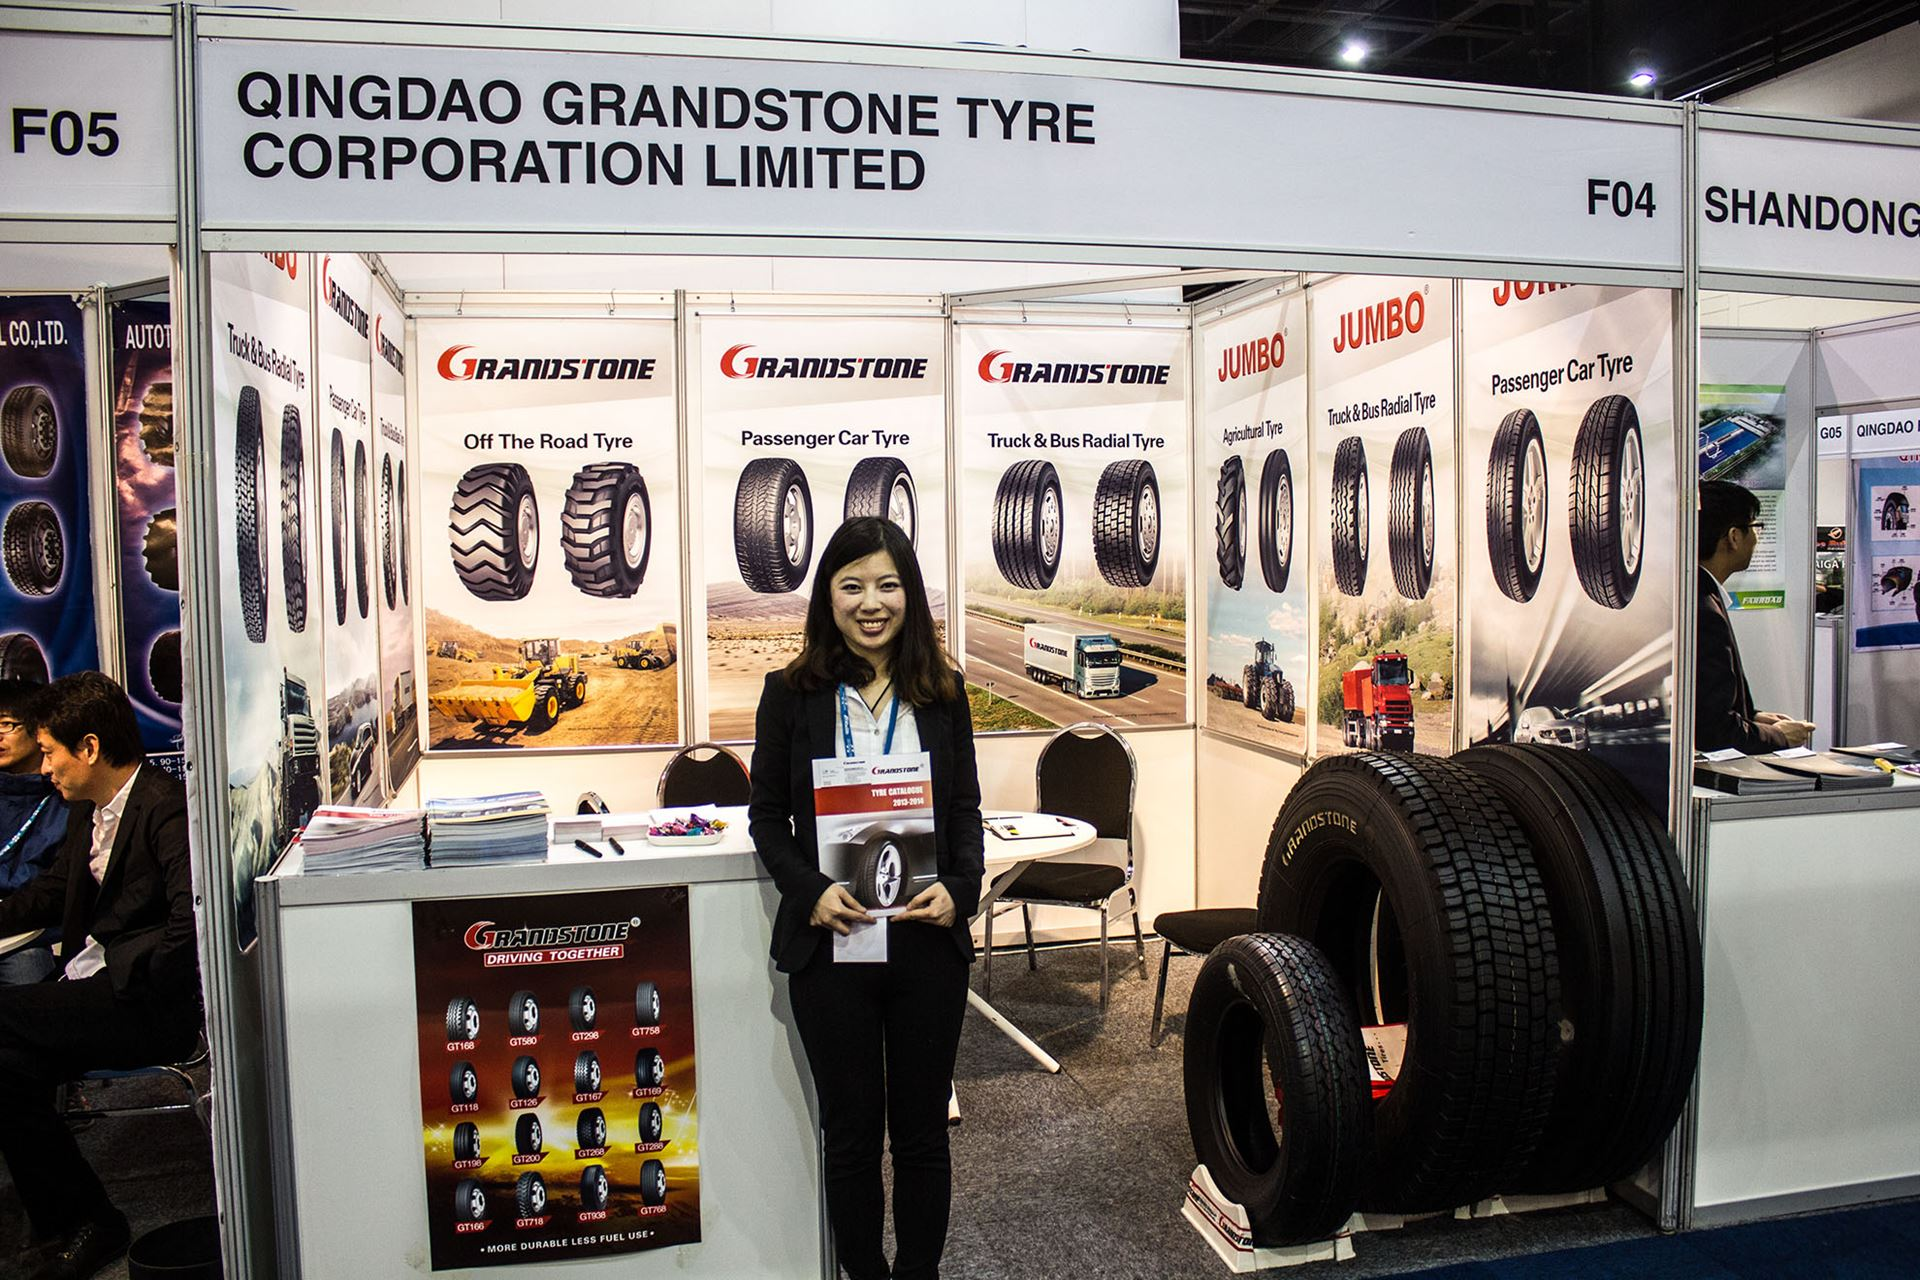 Tyre-Expo-South-Africa-2014-Qingdao-grandstone-tyres